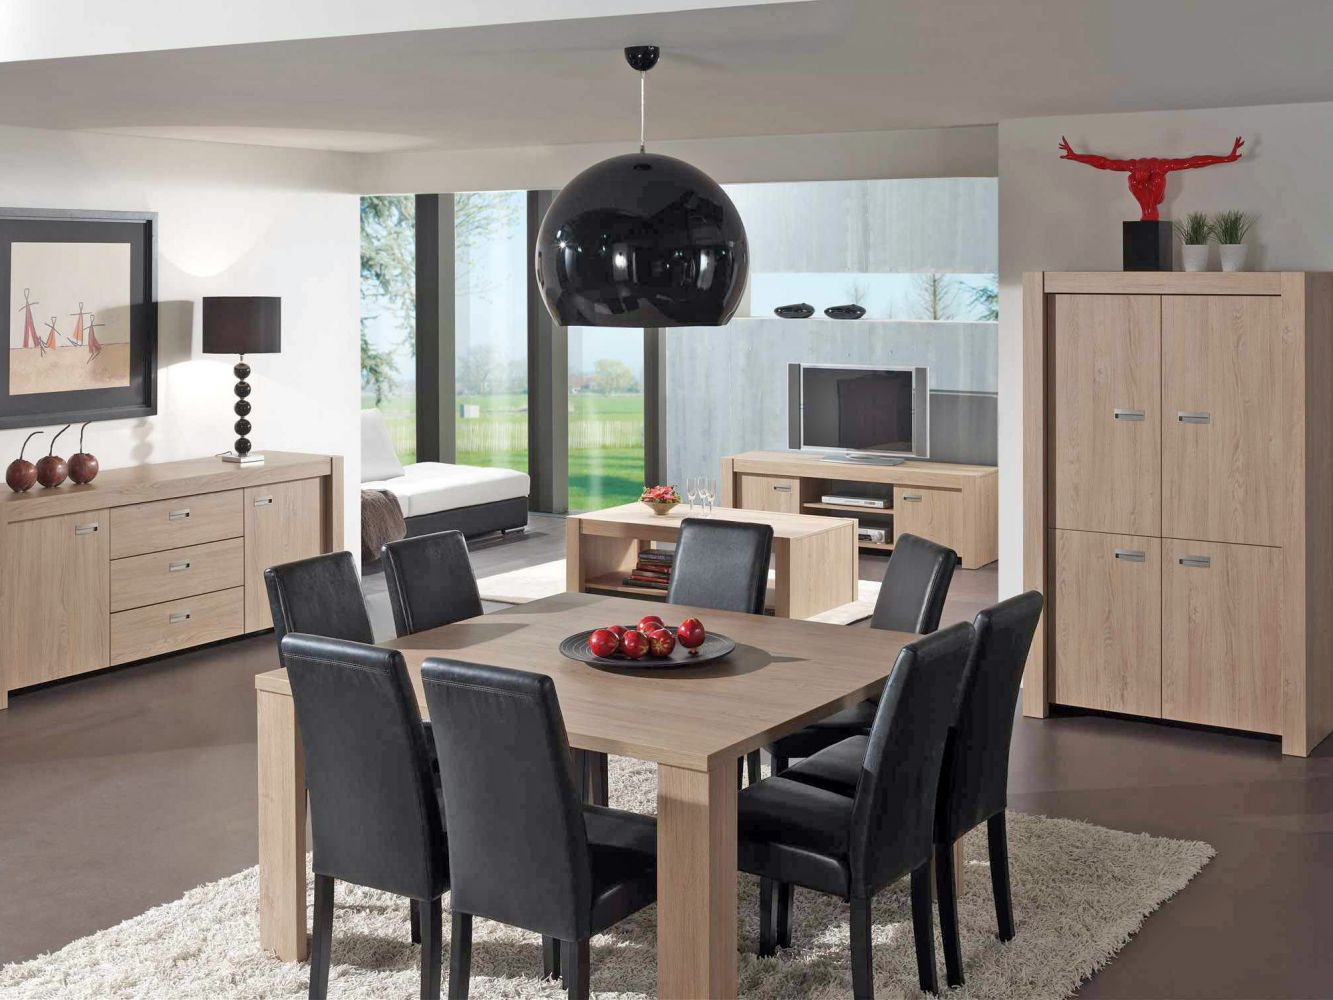 Salle a manger compl te conforama table carr e meuble et for Table de salle a manger carree design